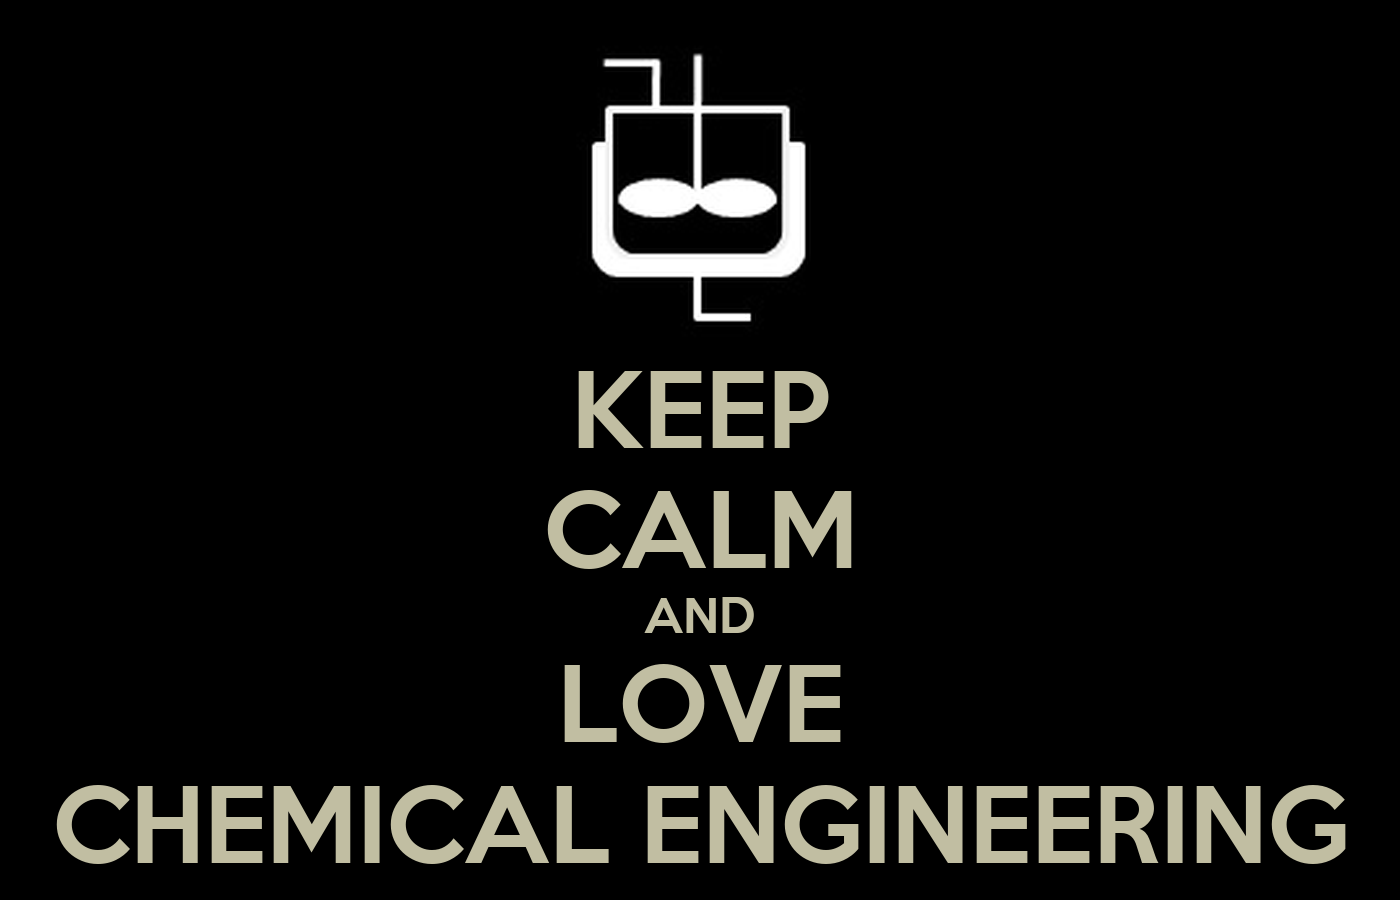 chemical engineering wallpaper - photo #34